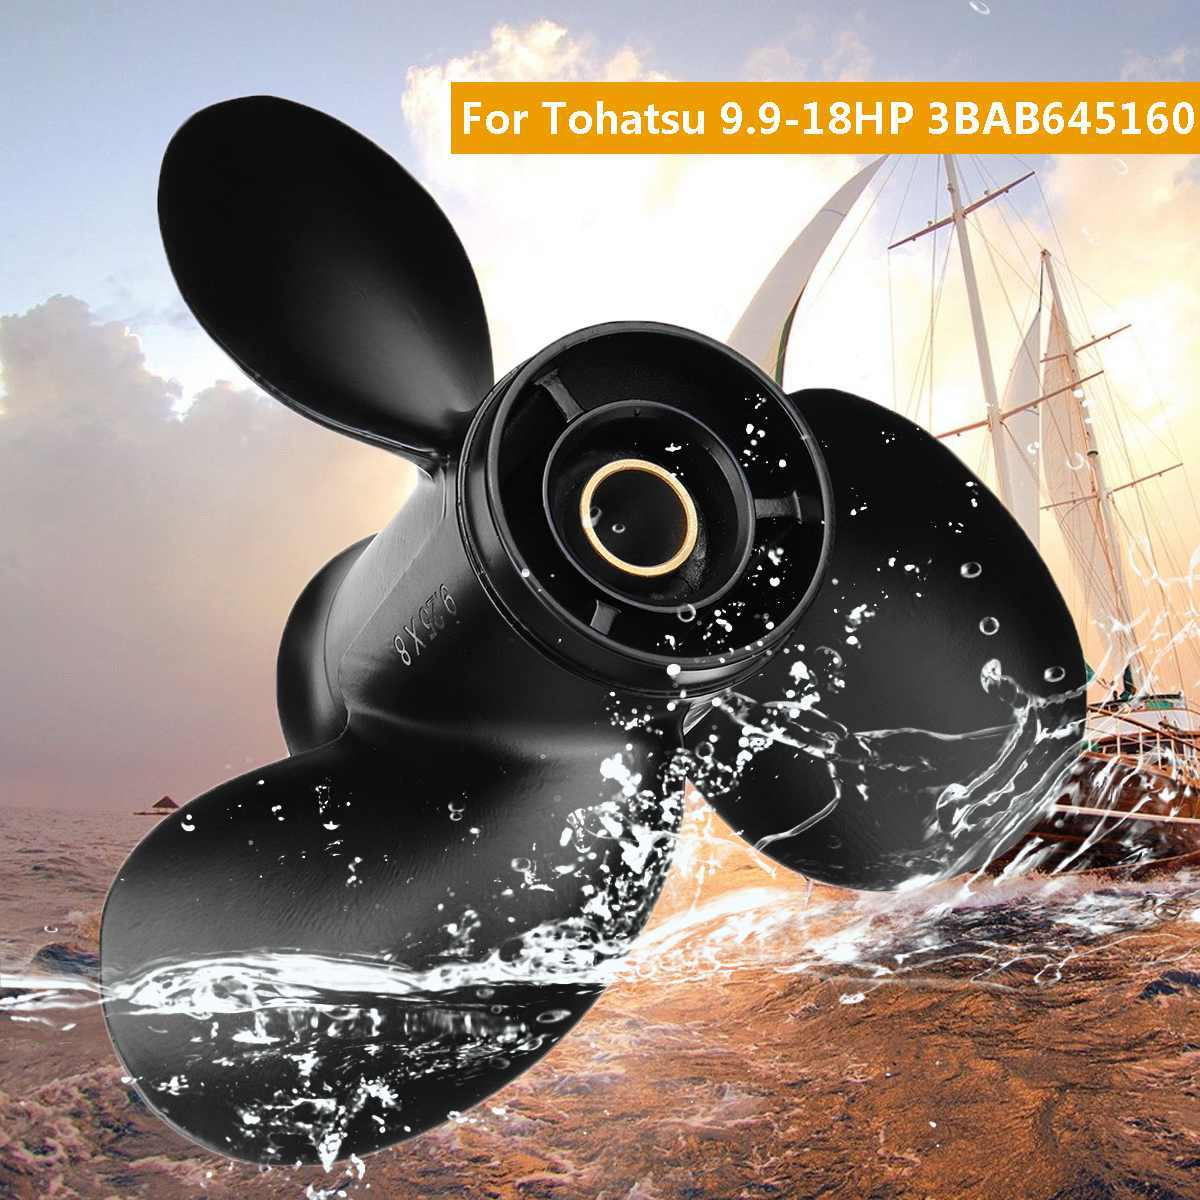 Outboard Propeller 48 897754A11 4 Stroke 9 25 X 11 For